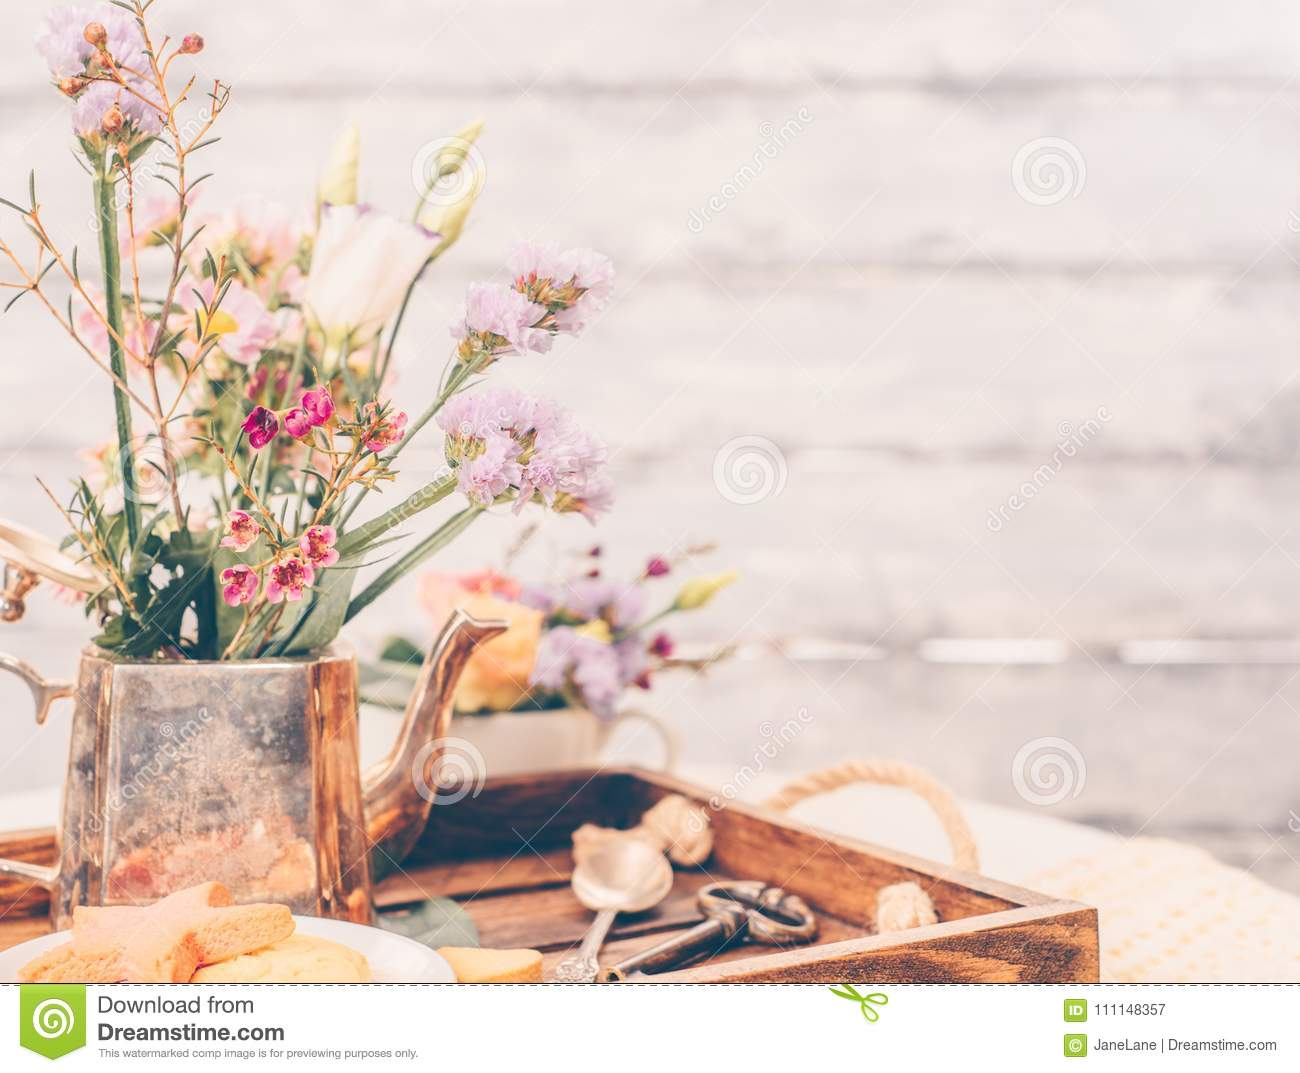 Beautiful Flowers In Old Vintage Tea Pot On Beautiful Wooden Tray Stock Image Image Of Pretty Food 111148357